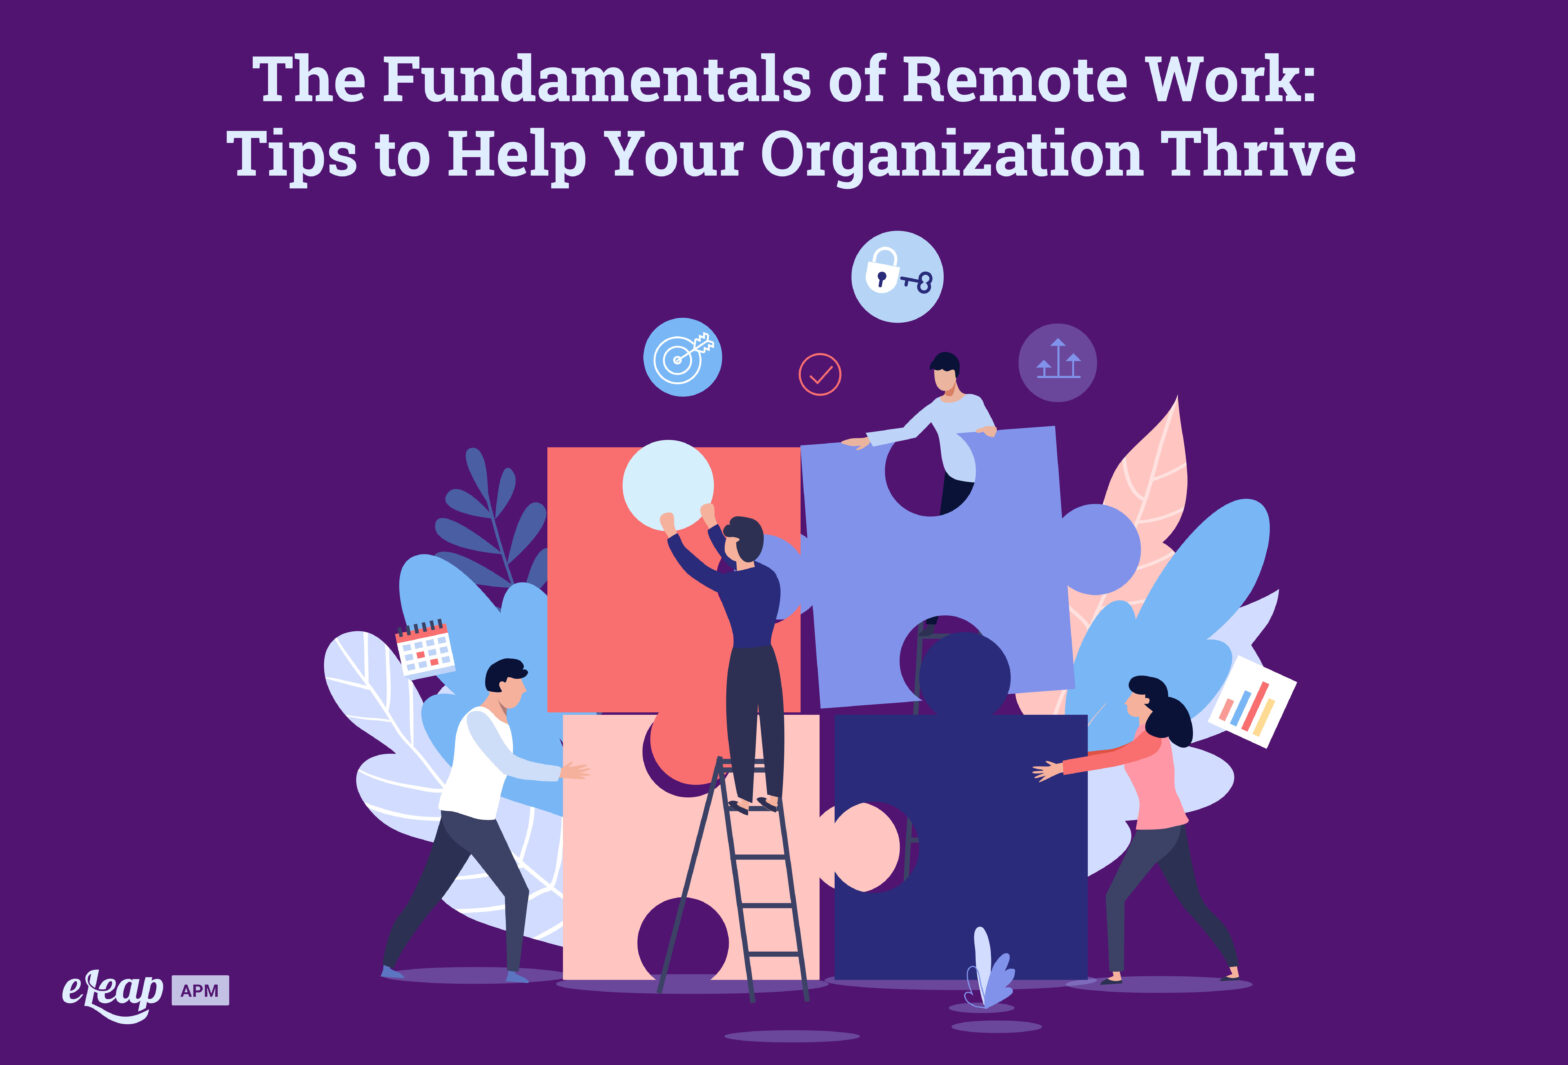 The Fundamentals of Remote Work: Tips to Help Your Organization Thrive